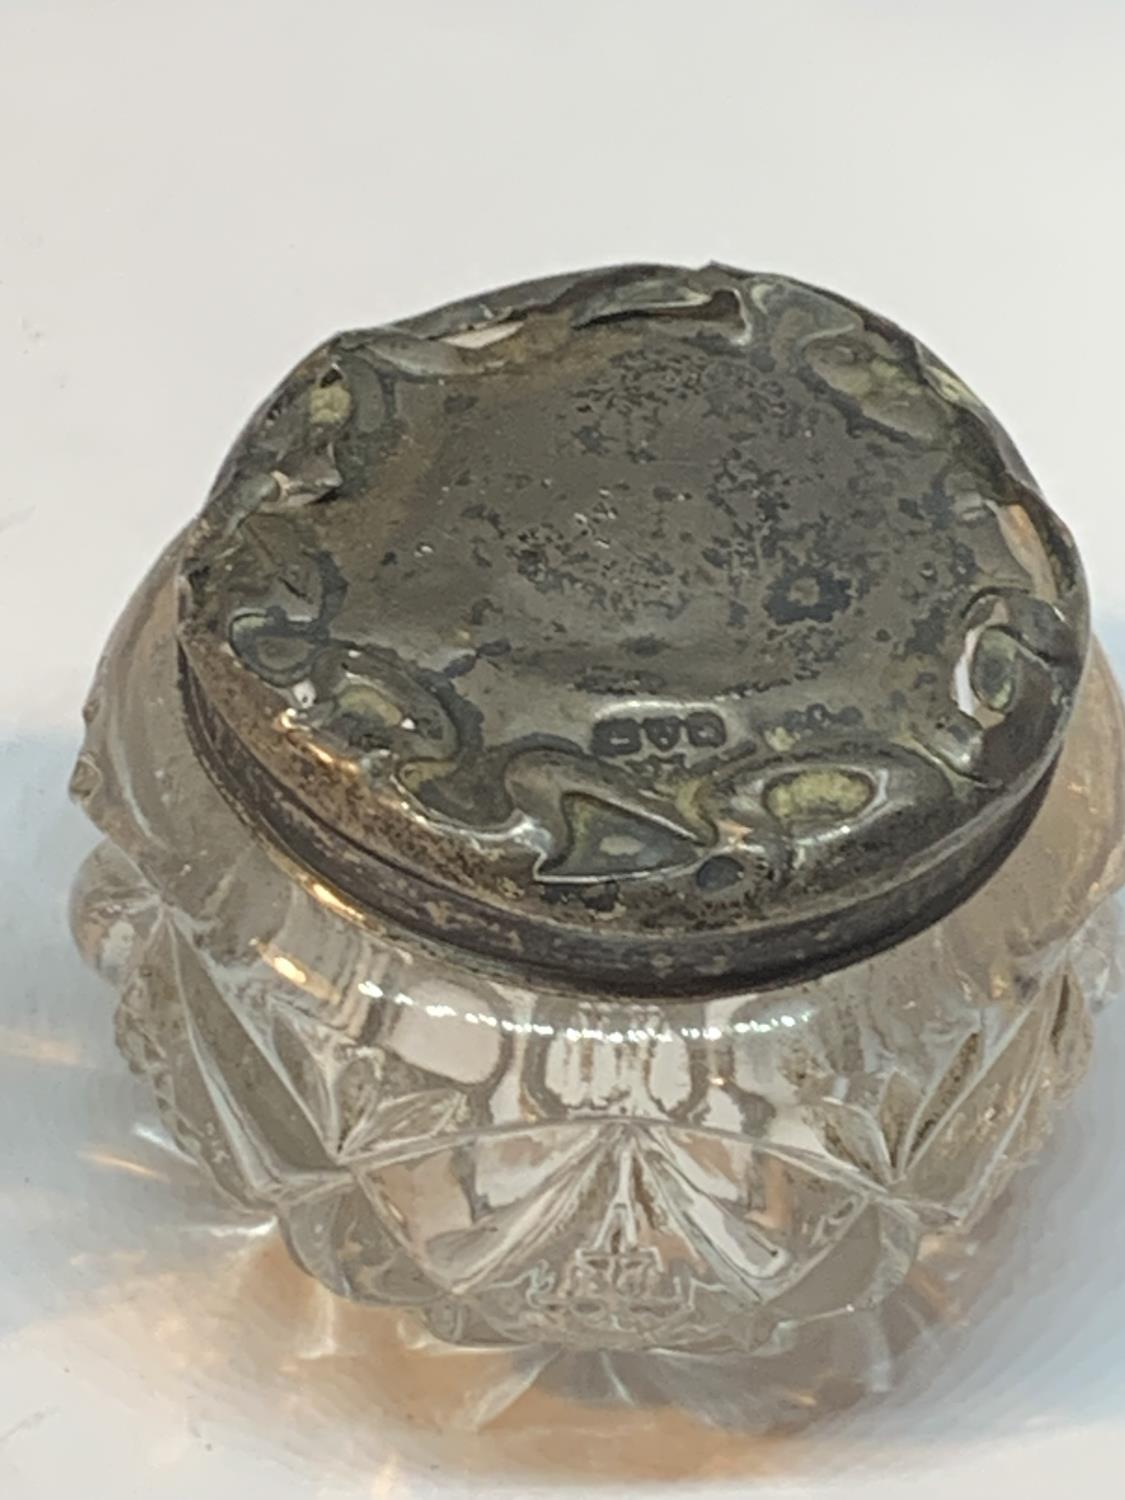 TWO GLASS POTS ONE WITH A HALLMARKED BIRMINGHAM SILVER RIM AND ONE WITH AN INDISTINCT HALLMARKED - Image 3 of 3